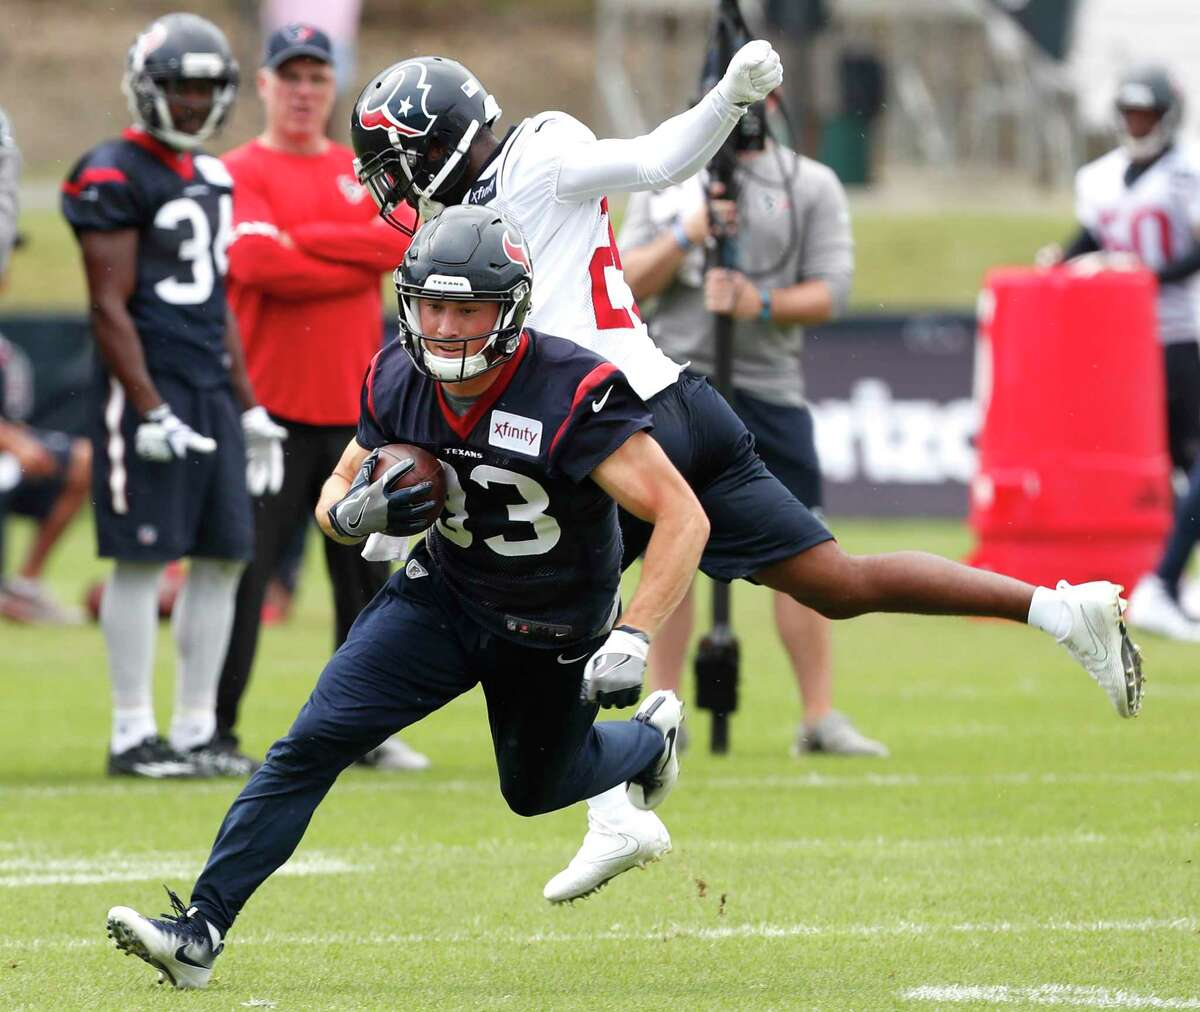 Houston Texans wide receiver Riley McCarron (83) turns upfield after making a catch during training camp at The Greenbrier on Friday, Aug. 11, 2017, in White Sulphur Springs, W.Va.